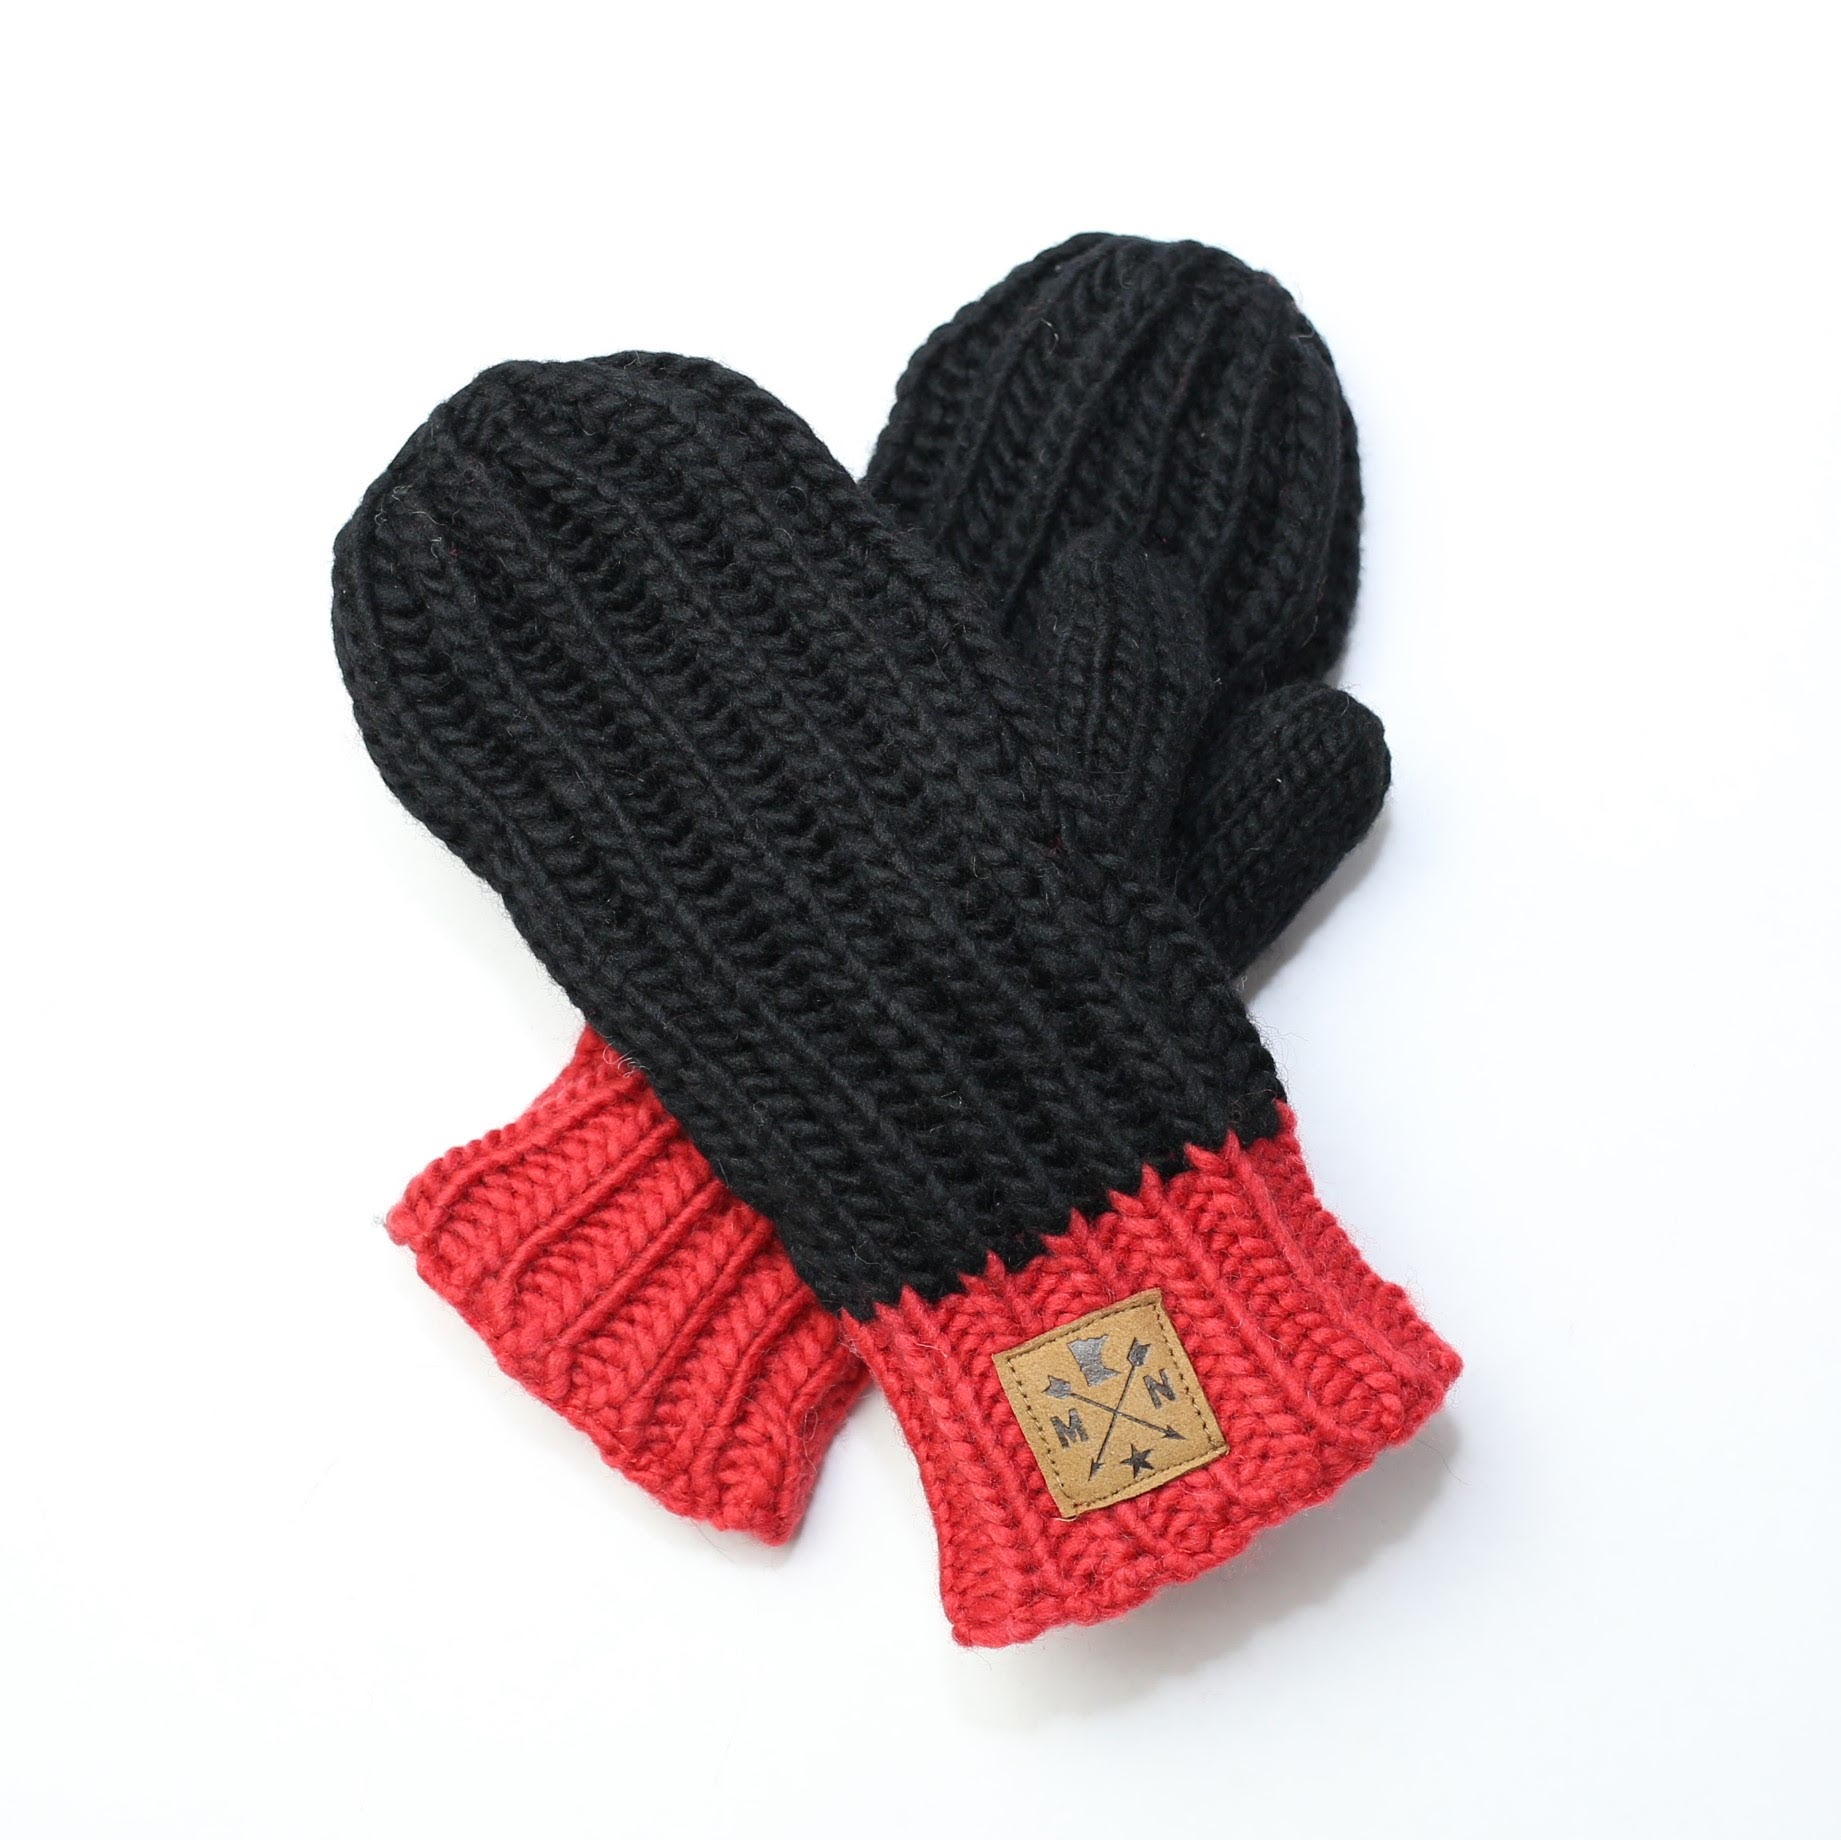 Black & Red Knit Mittens